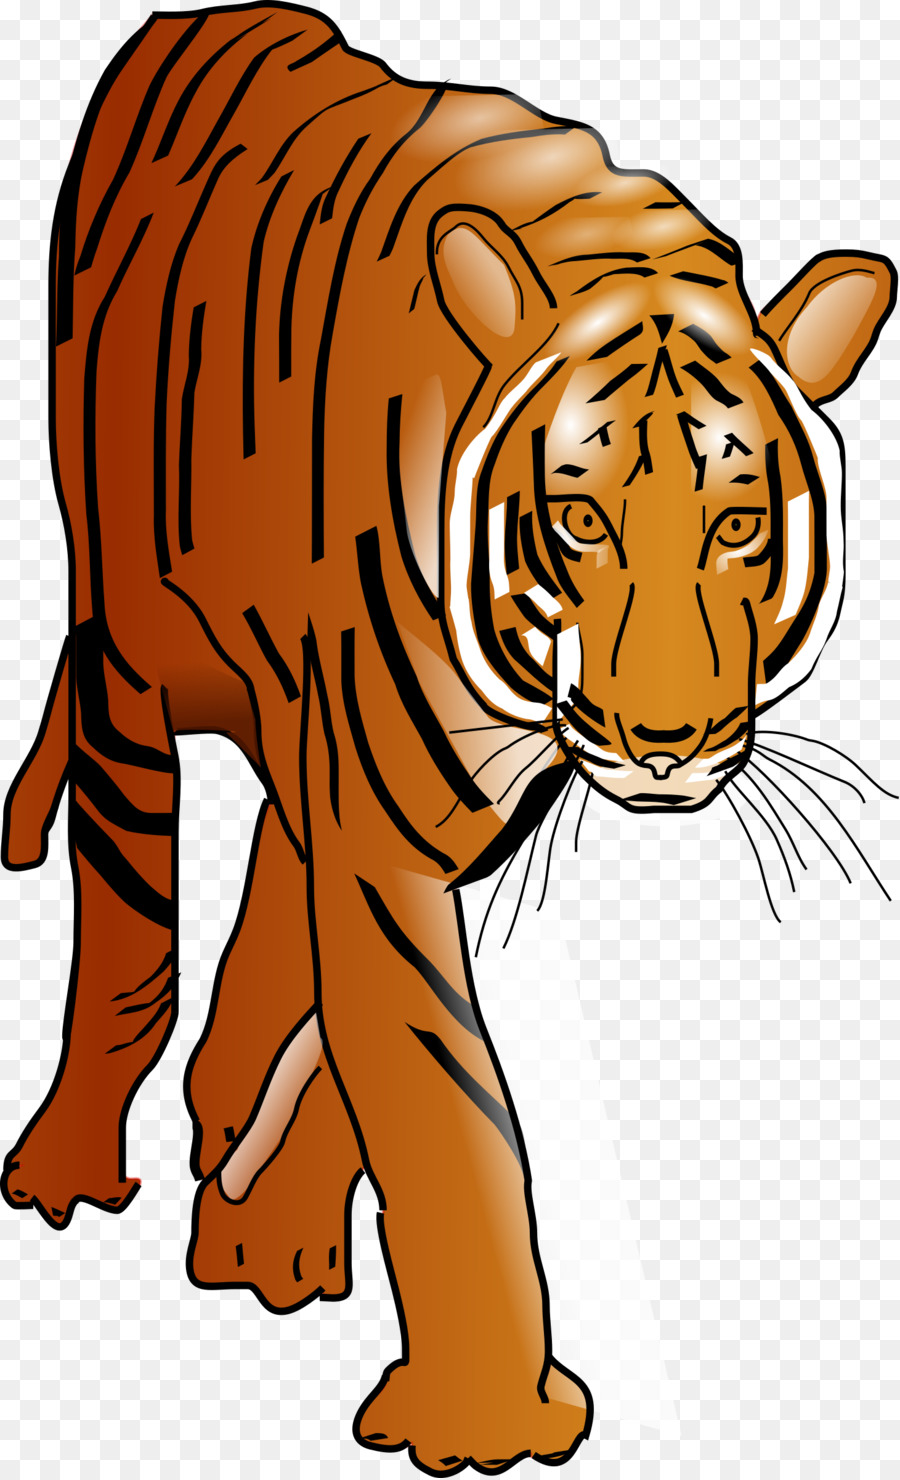 custom bengal tiger shower curtain clipart Bengal tiger Bengal cat Clip art